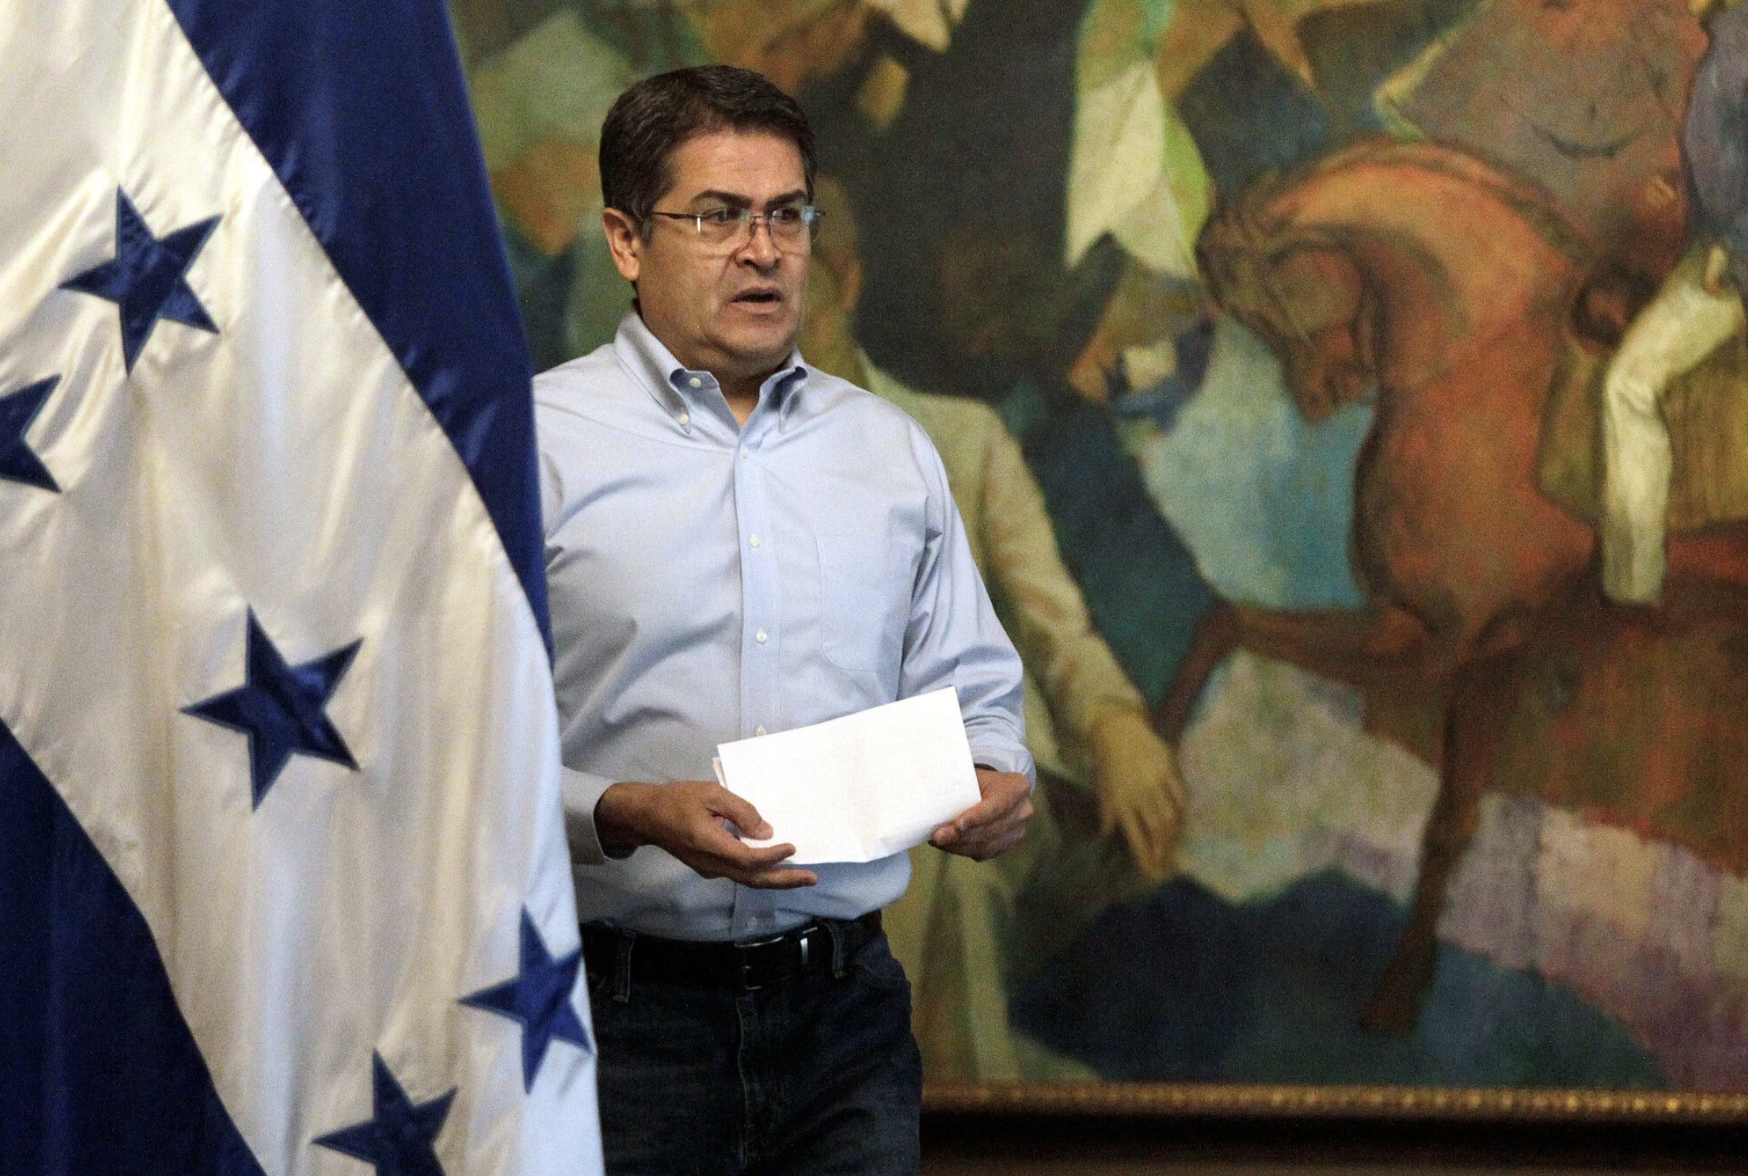 A Damning Portrait of Presidential Corruption, but Hondurans Sound Resigned